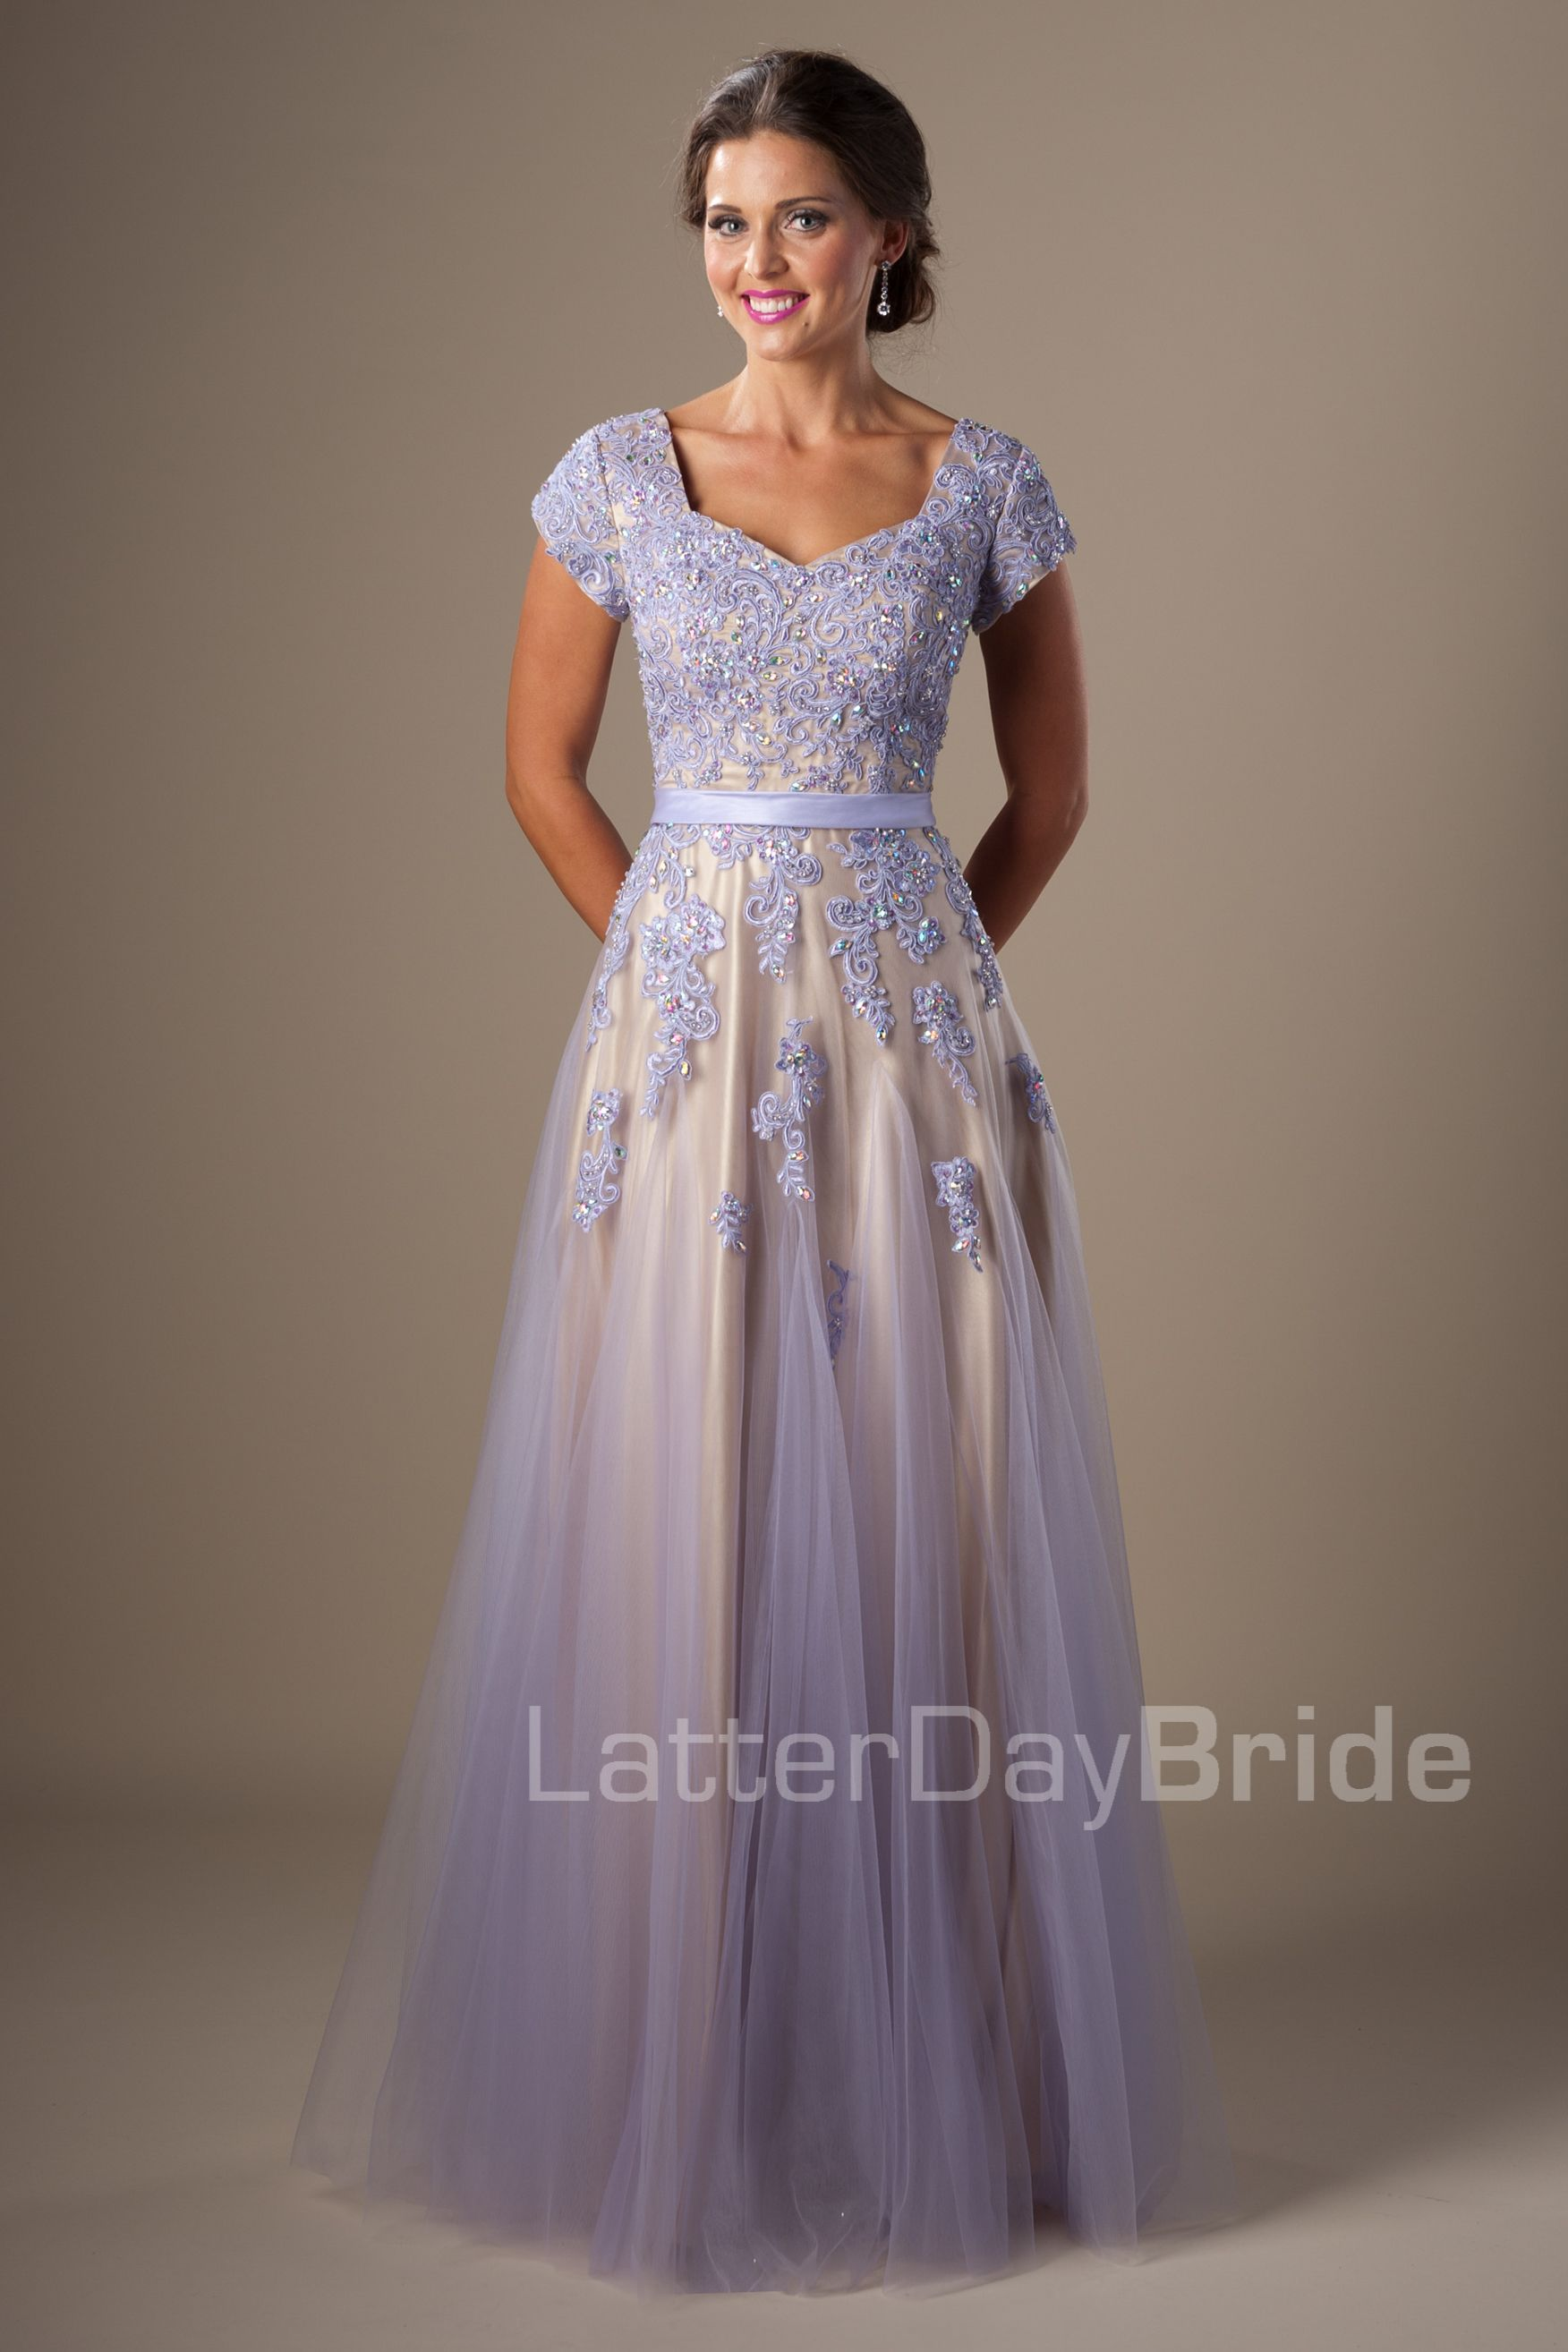 Modest Prom Dresses : Rylie couldn't decide if i like purple or ...